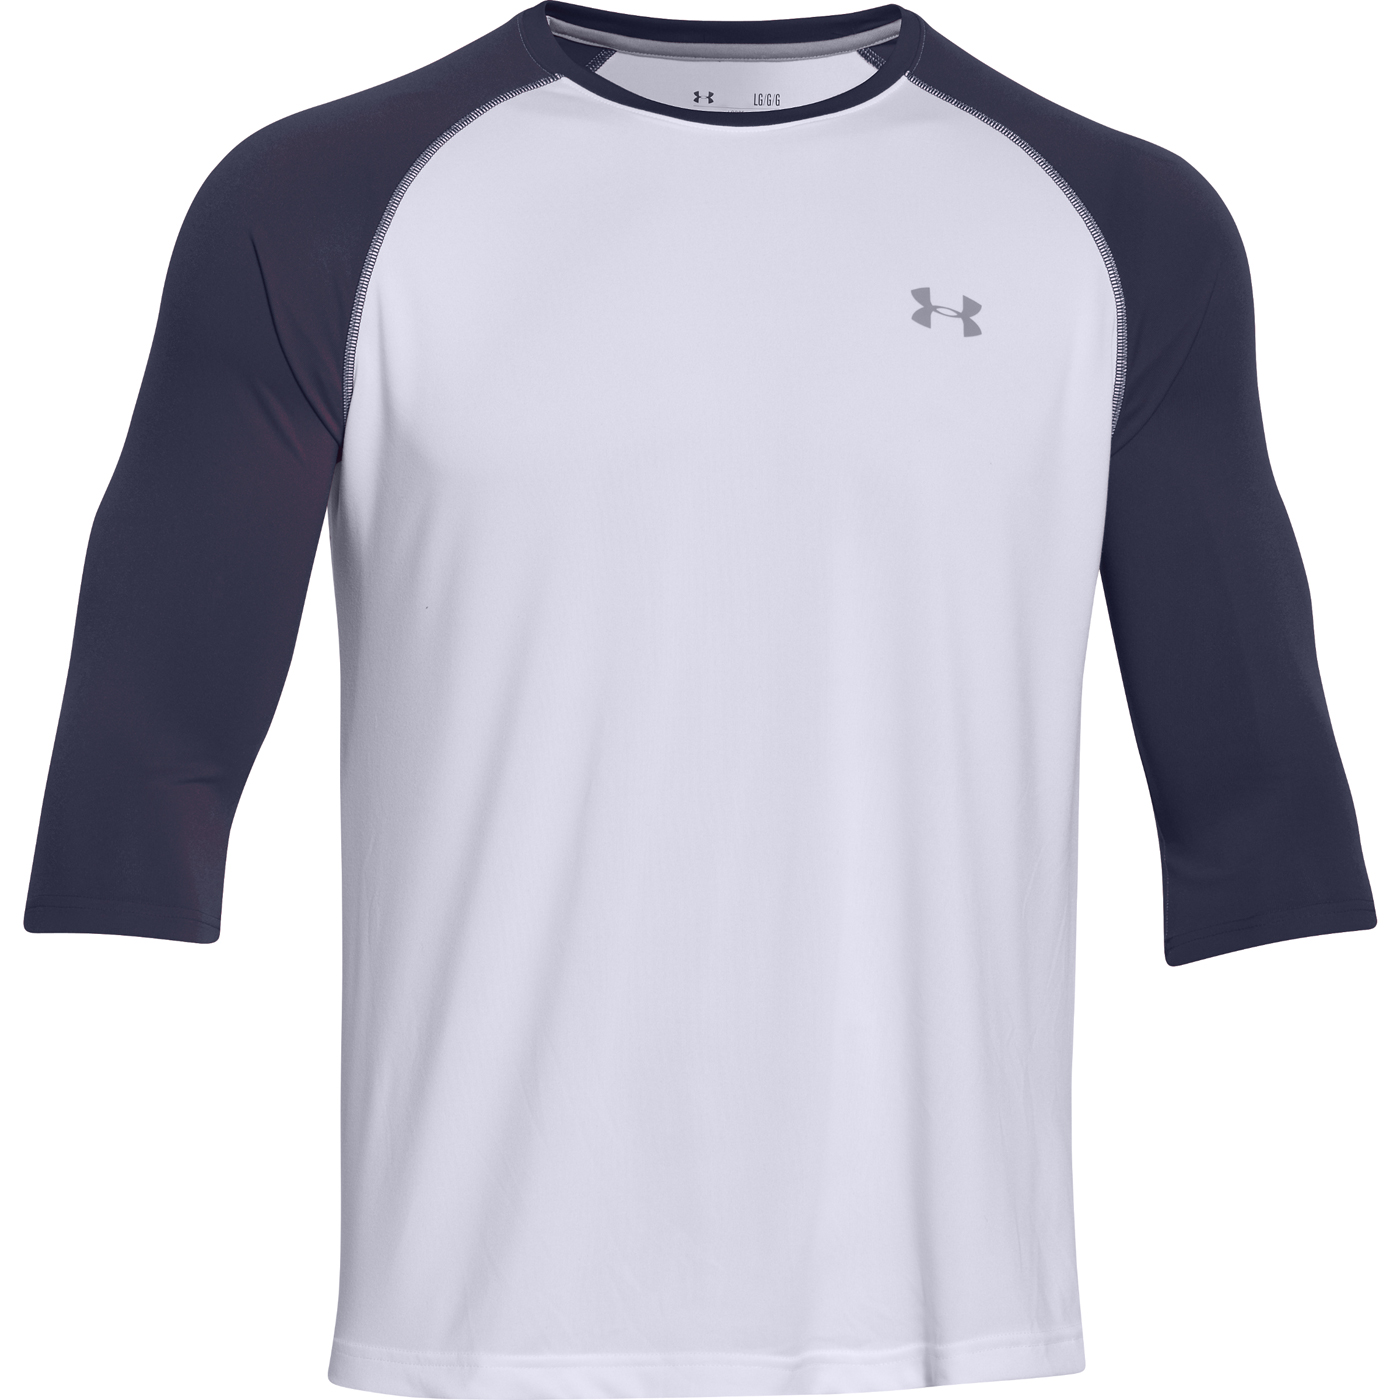 Buy under armor long sleeve t shirts 63 off for Under armour half sleeve shirt